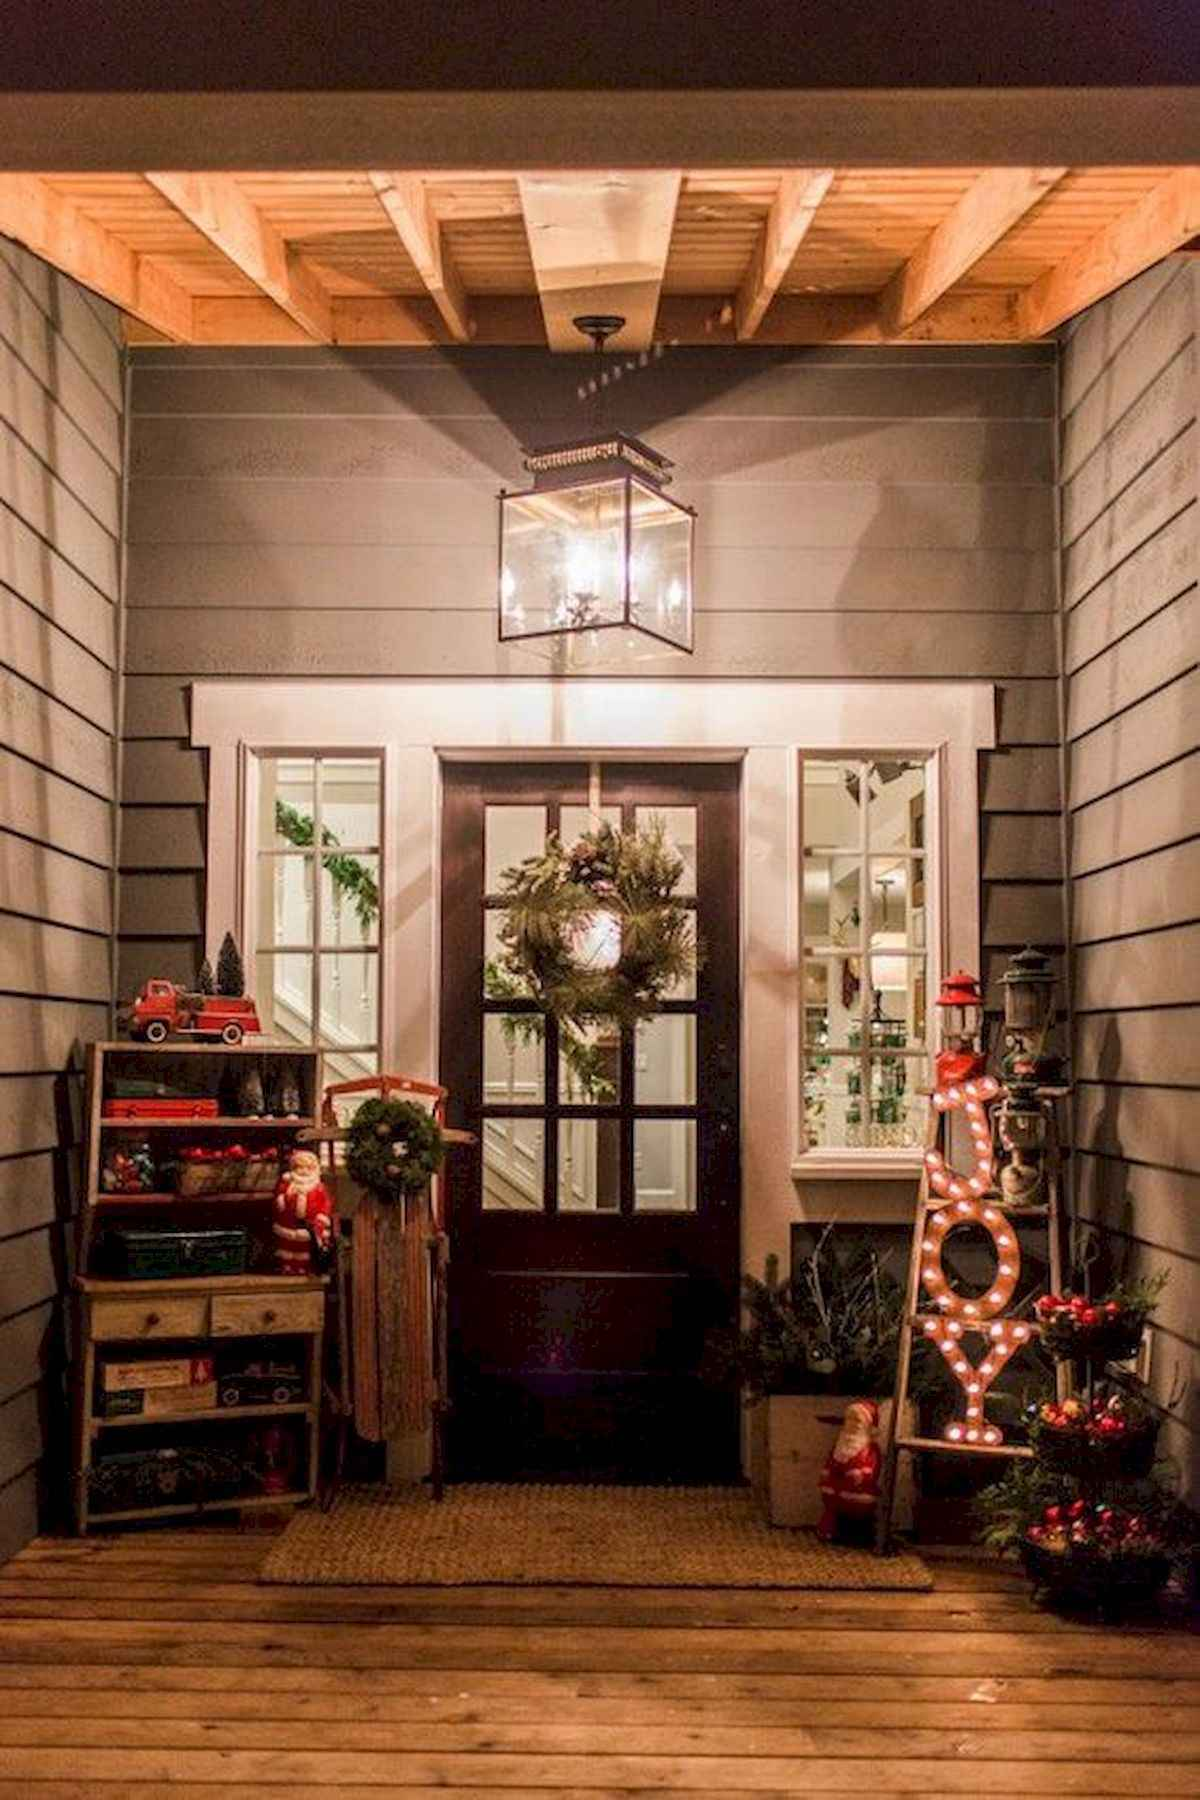 50 stunning front porch christmas lights decorations ideas (30)